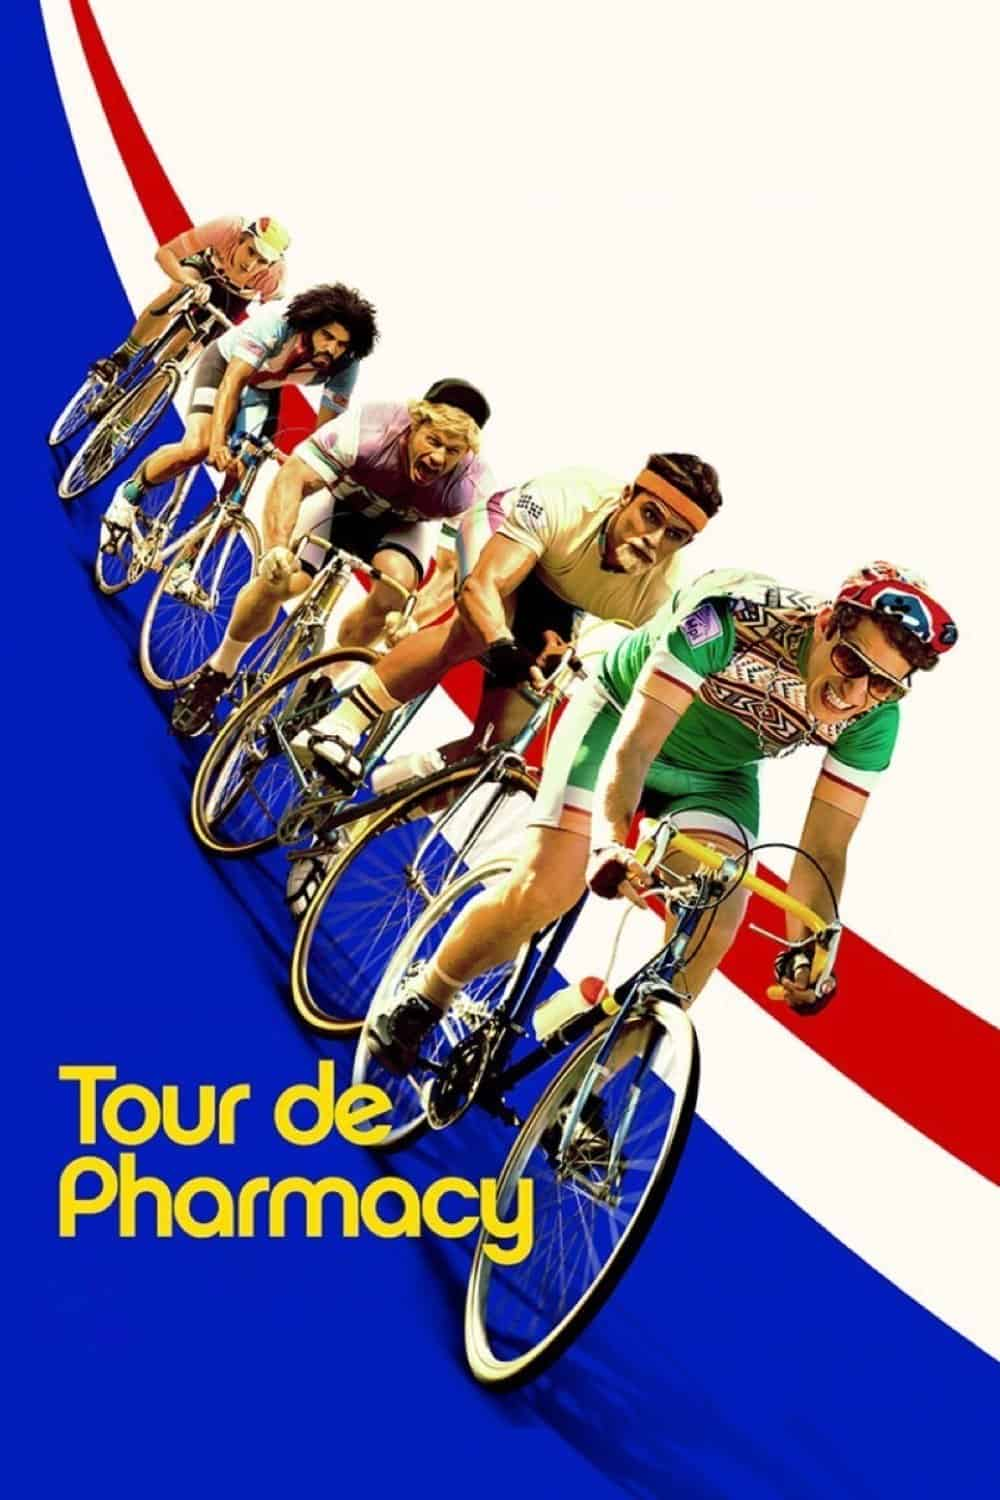 Tour de Pharmacy, 2017